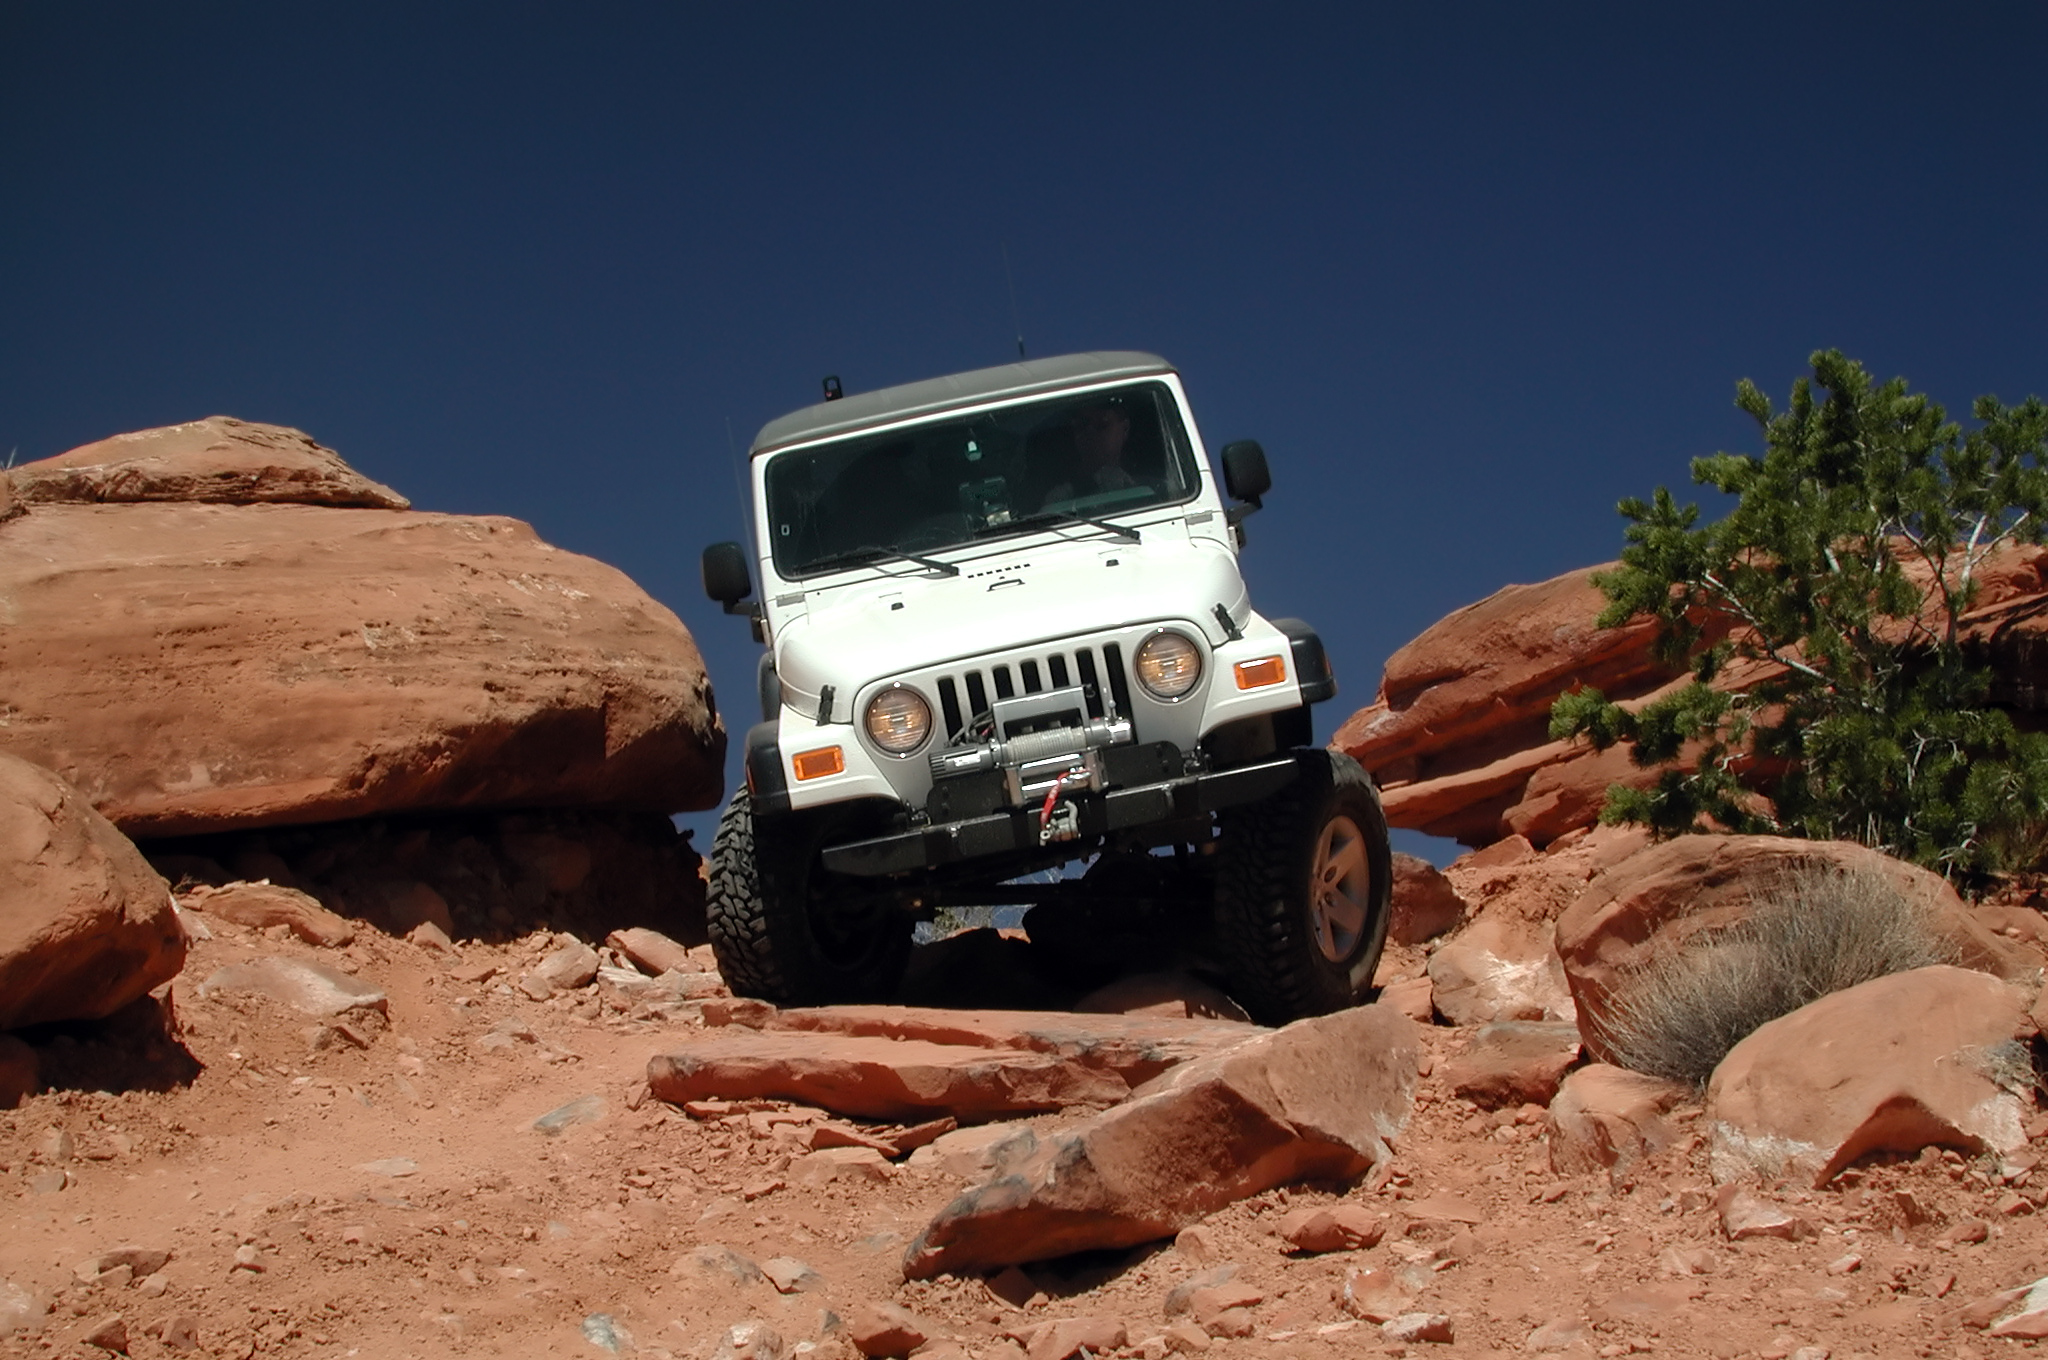 Jeep Rubicon III driving over large, rocky terrain